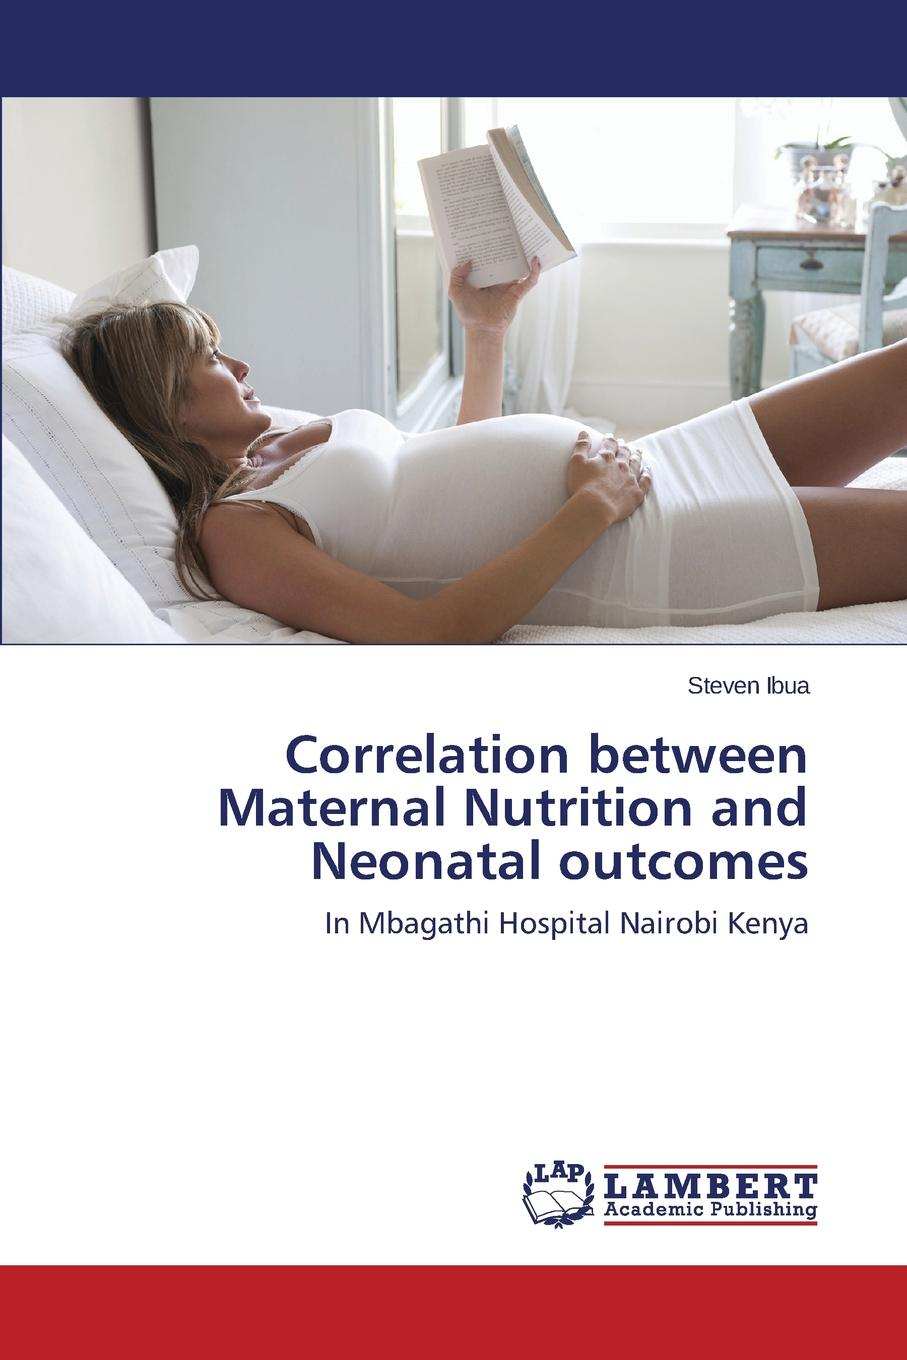 Ibua Steven Correlation between Maternal Nutrition and Neonatal outcomes maternal correlates of low birth weight deliveries